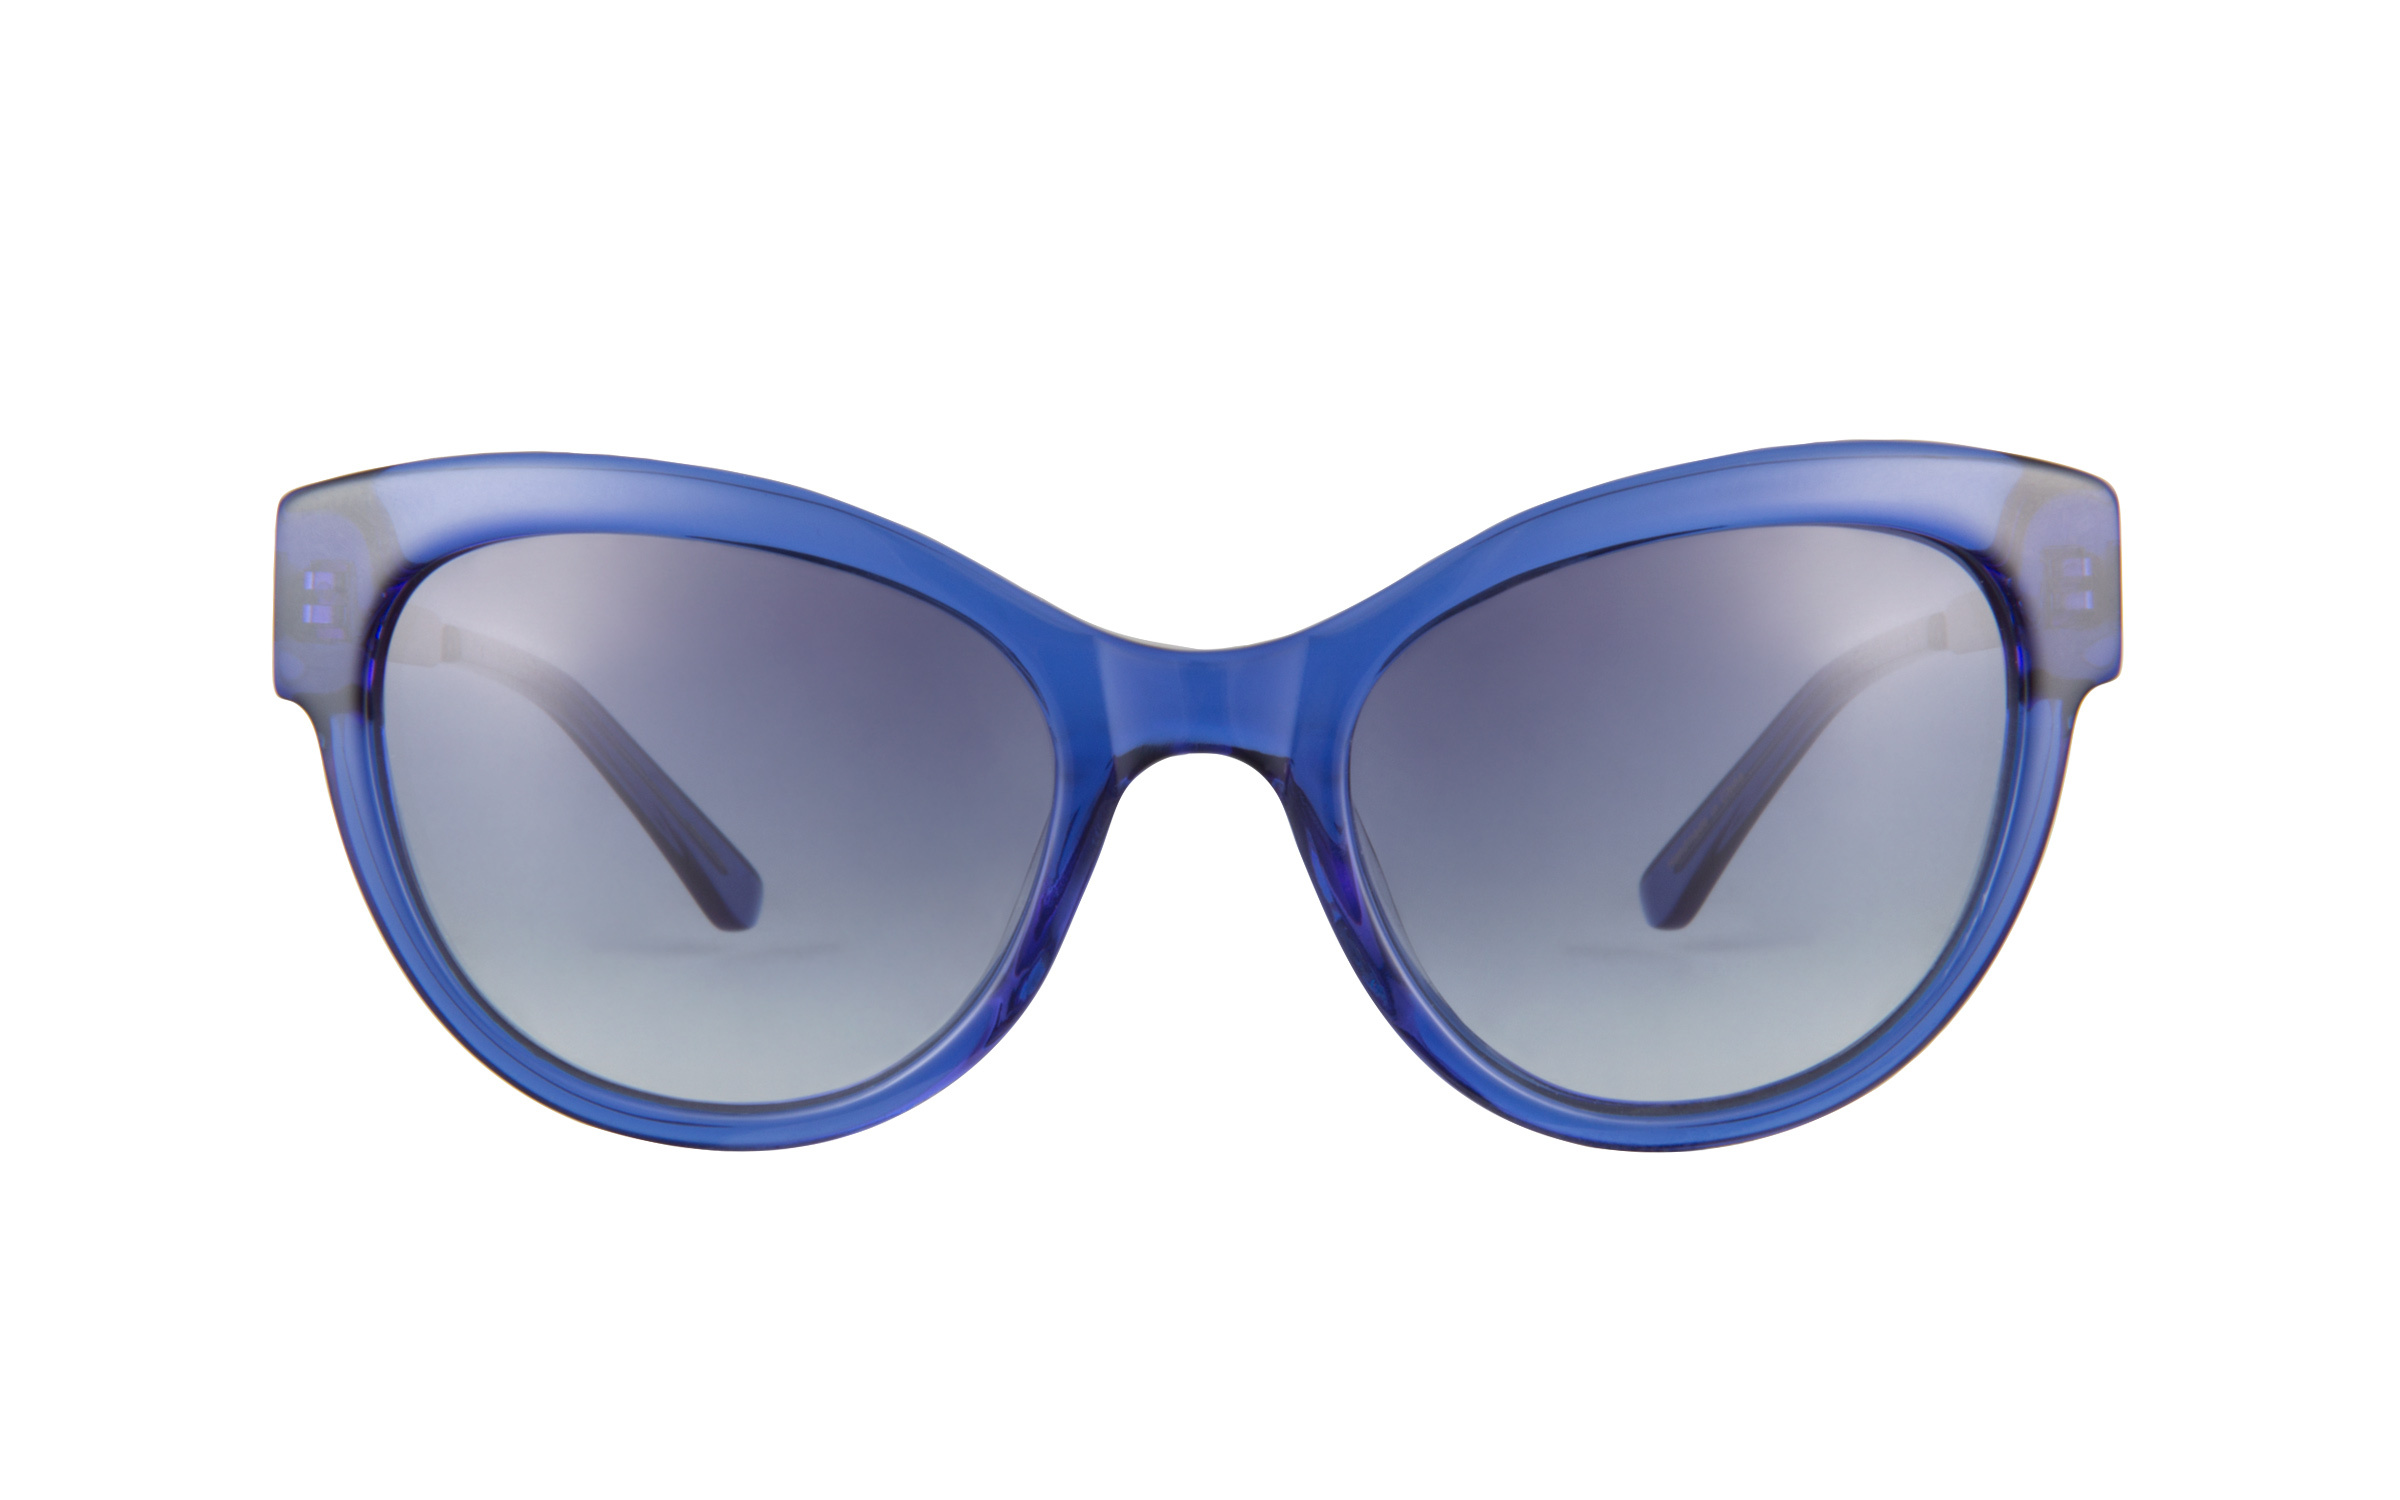 Kam Dhillon 302S Blue Sunglasses